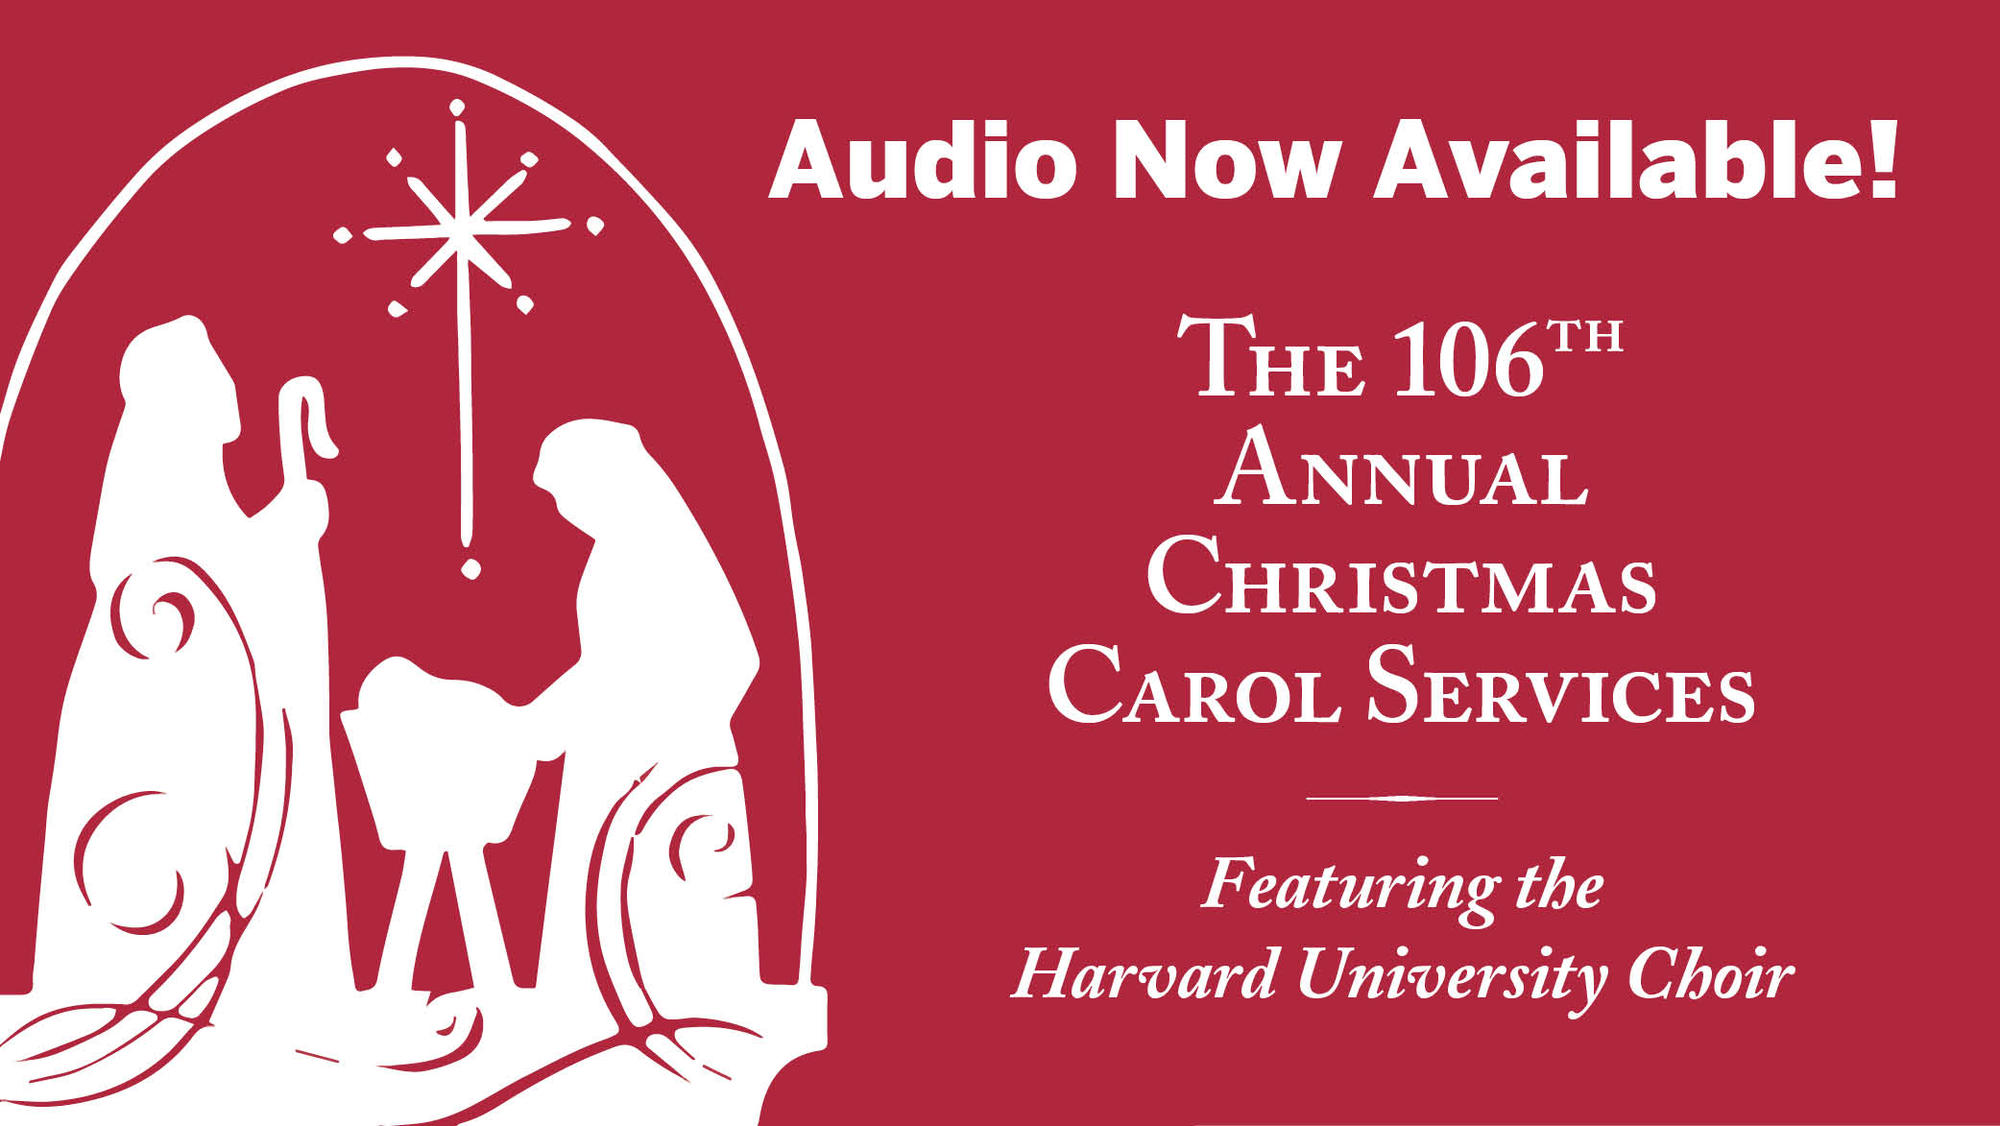 Audio of Last Year's Carol Service